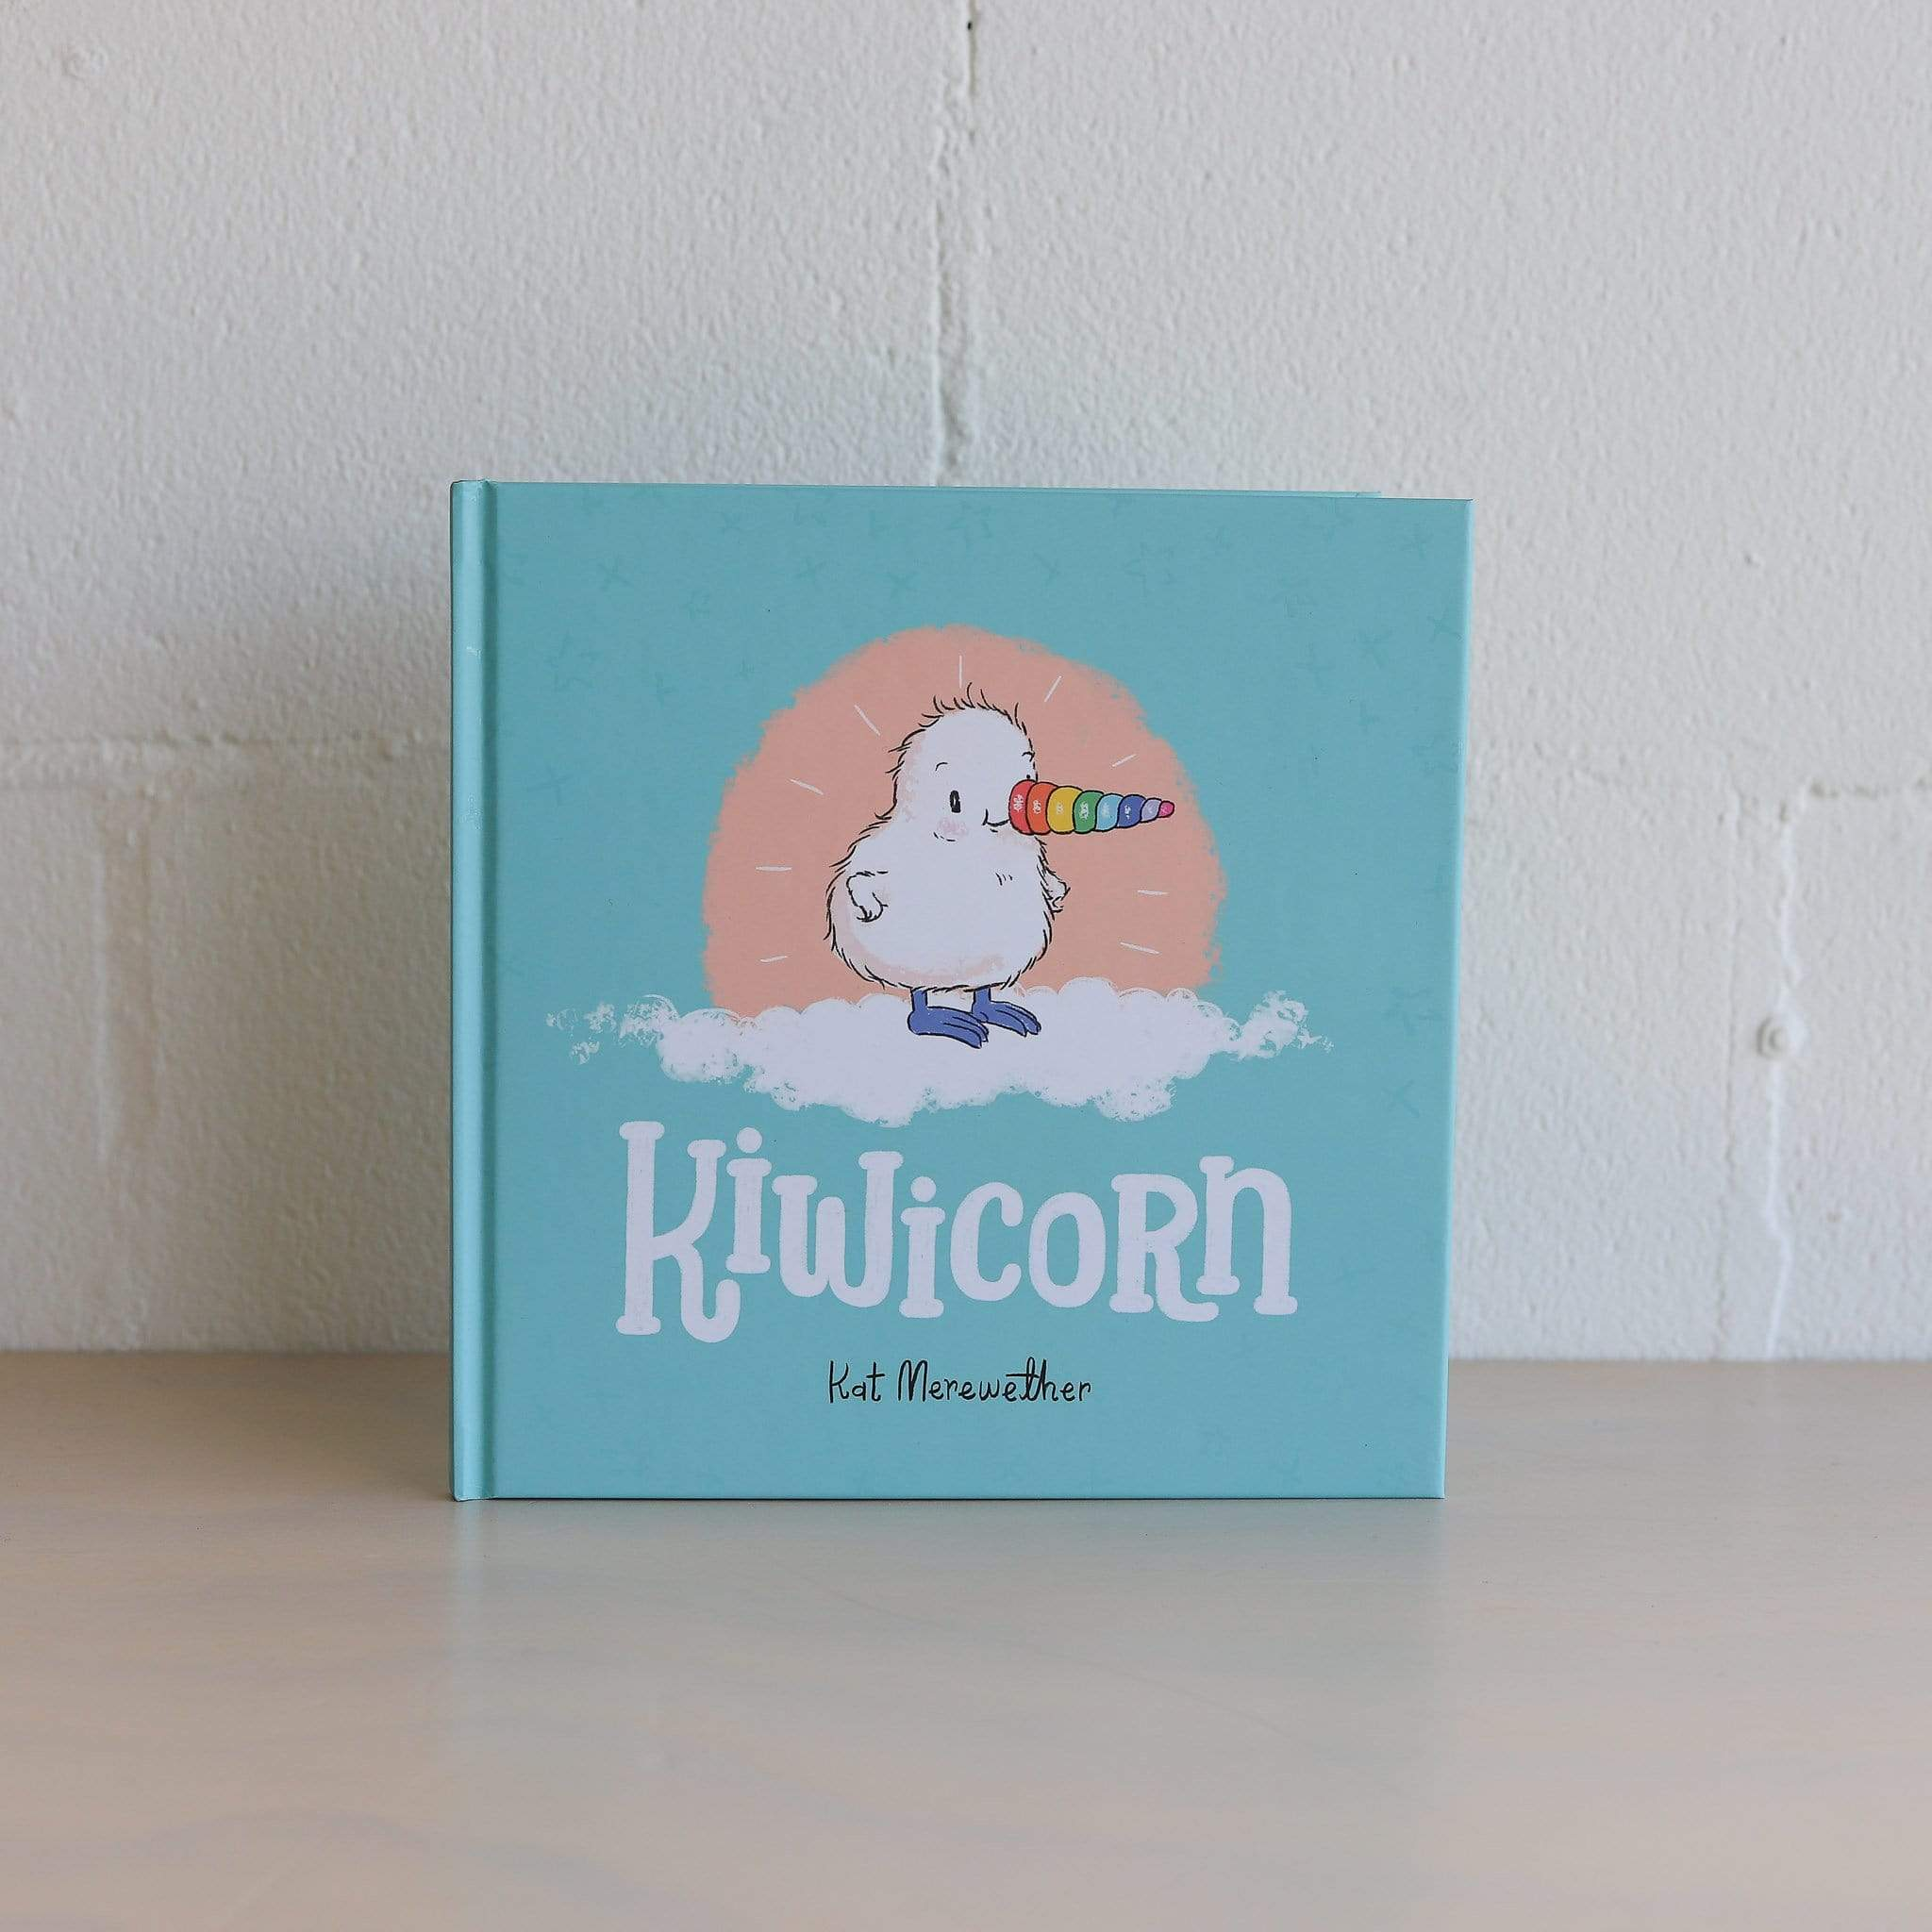 Kiwicorn Hardcover Book